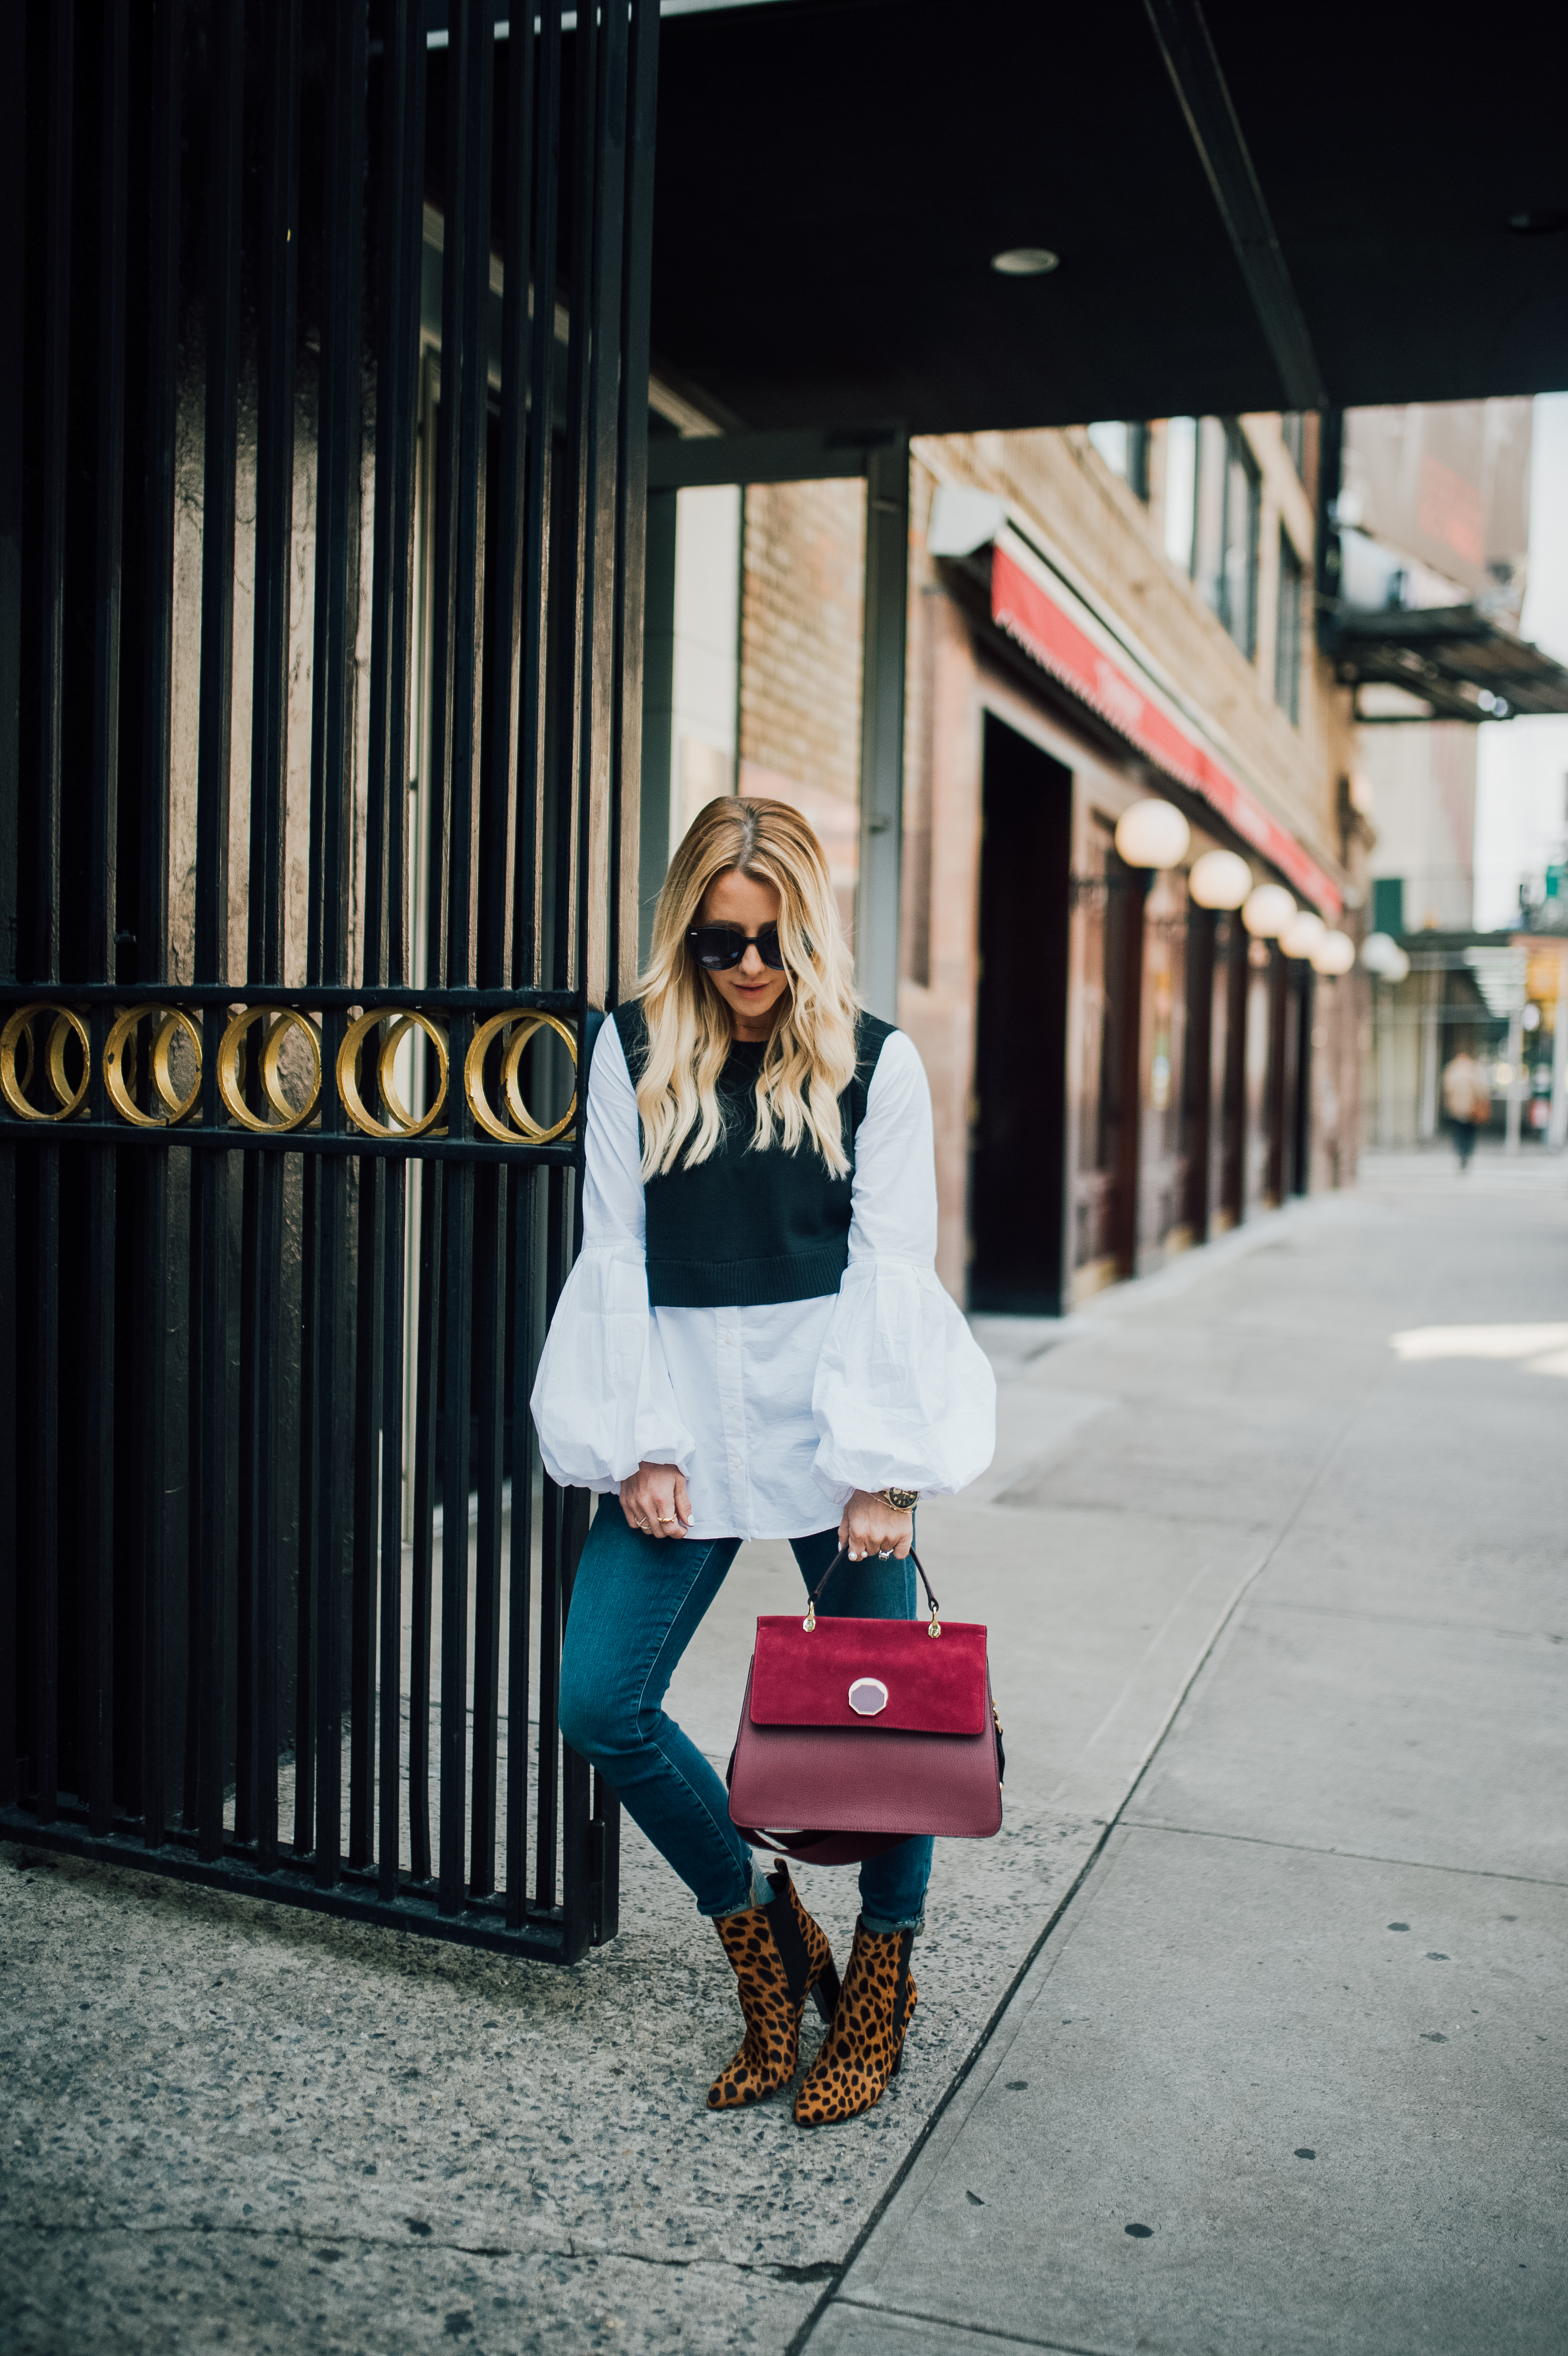 Fall Sweater - On Sale! by San Francisco fashion blogger For the Love